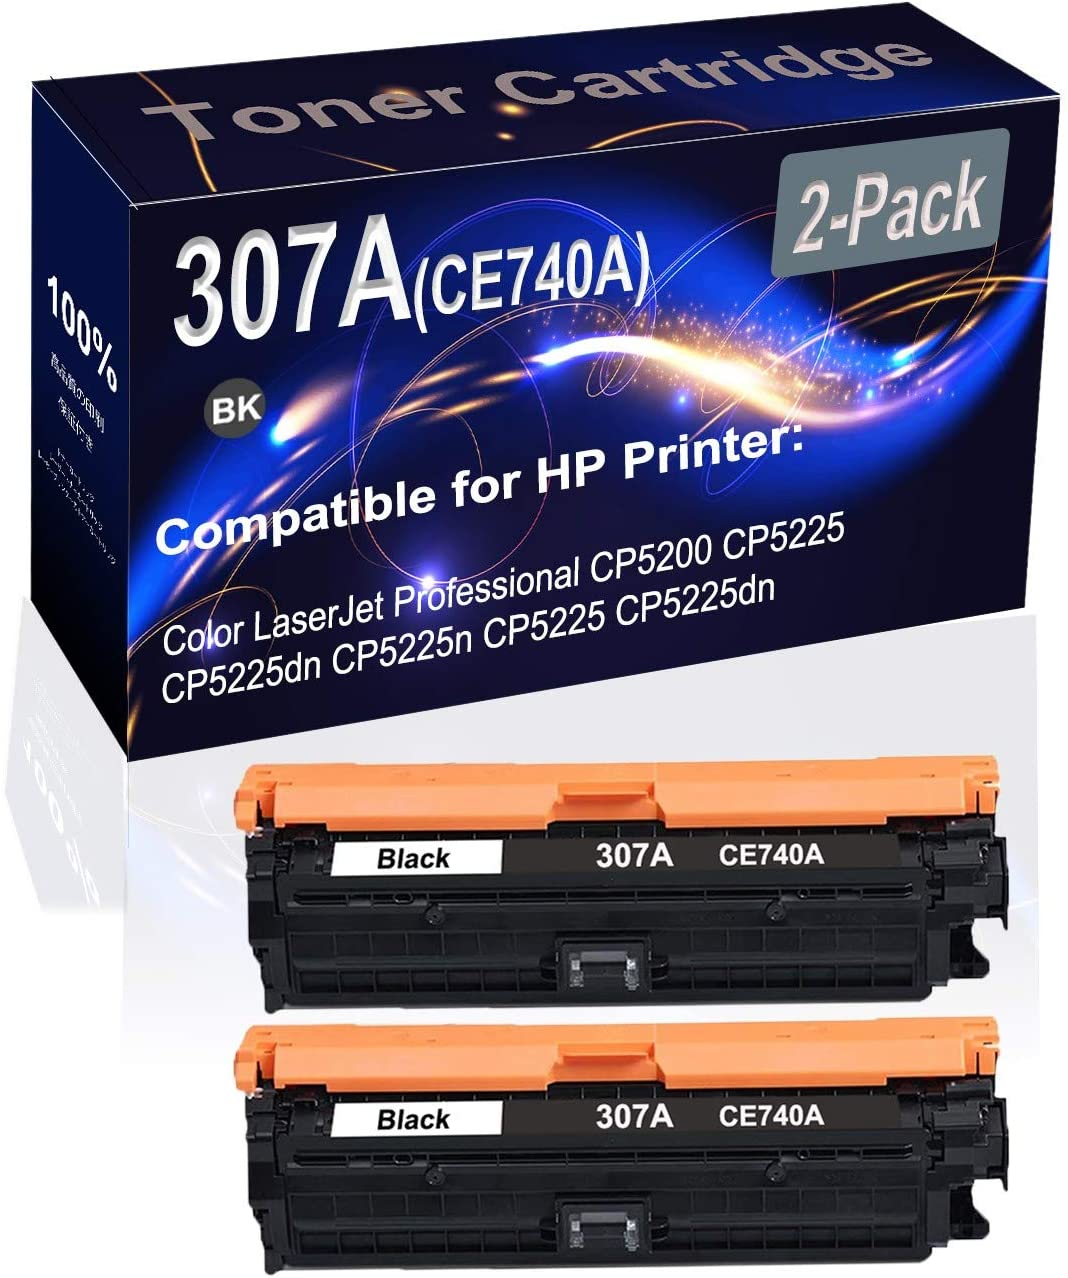 2-Pack (Black) Compatible CP5200 CP5225 Laser Toner Cartridge (High Capacity) Replacement for HP 307A (CE740A) Printer Toner Cartridge